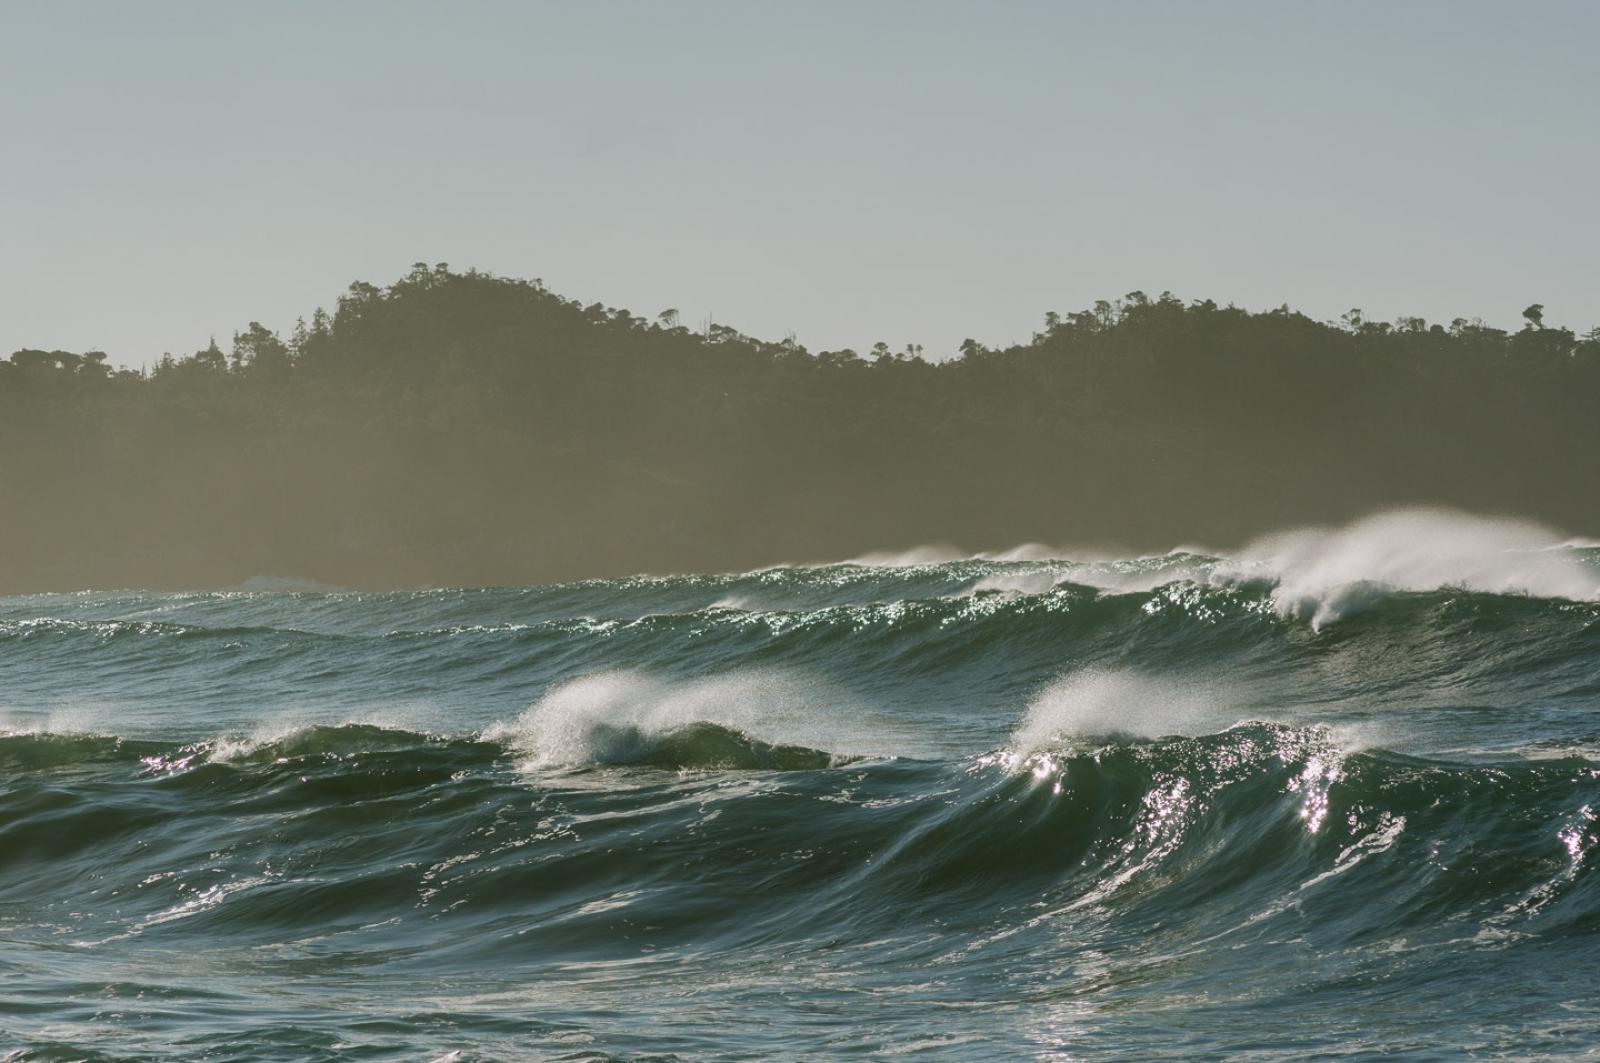 Waves Photo by Adrian Unger